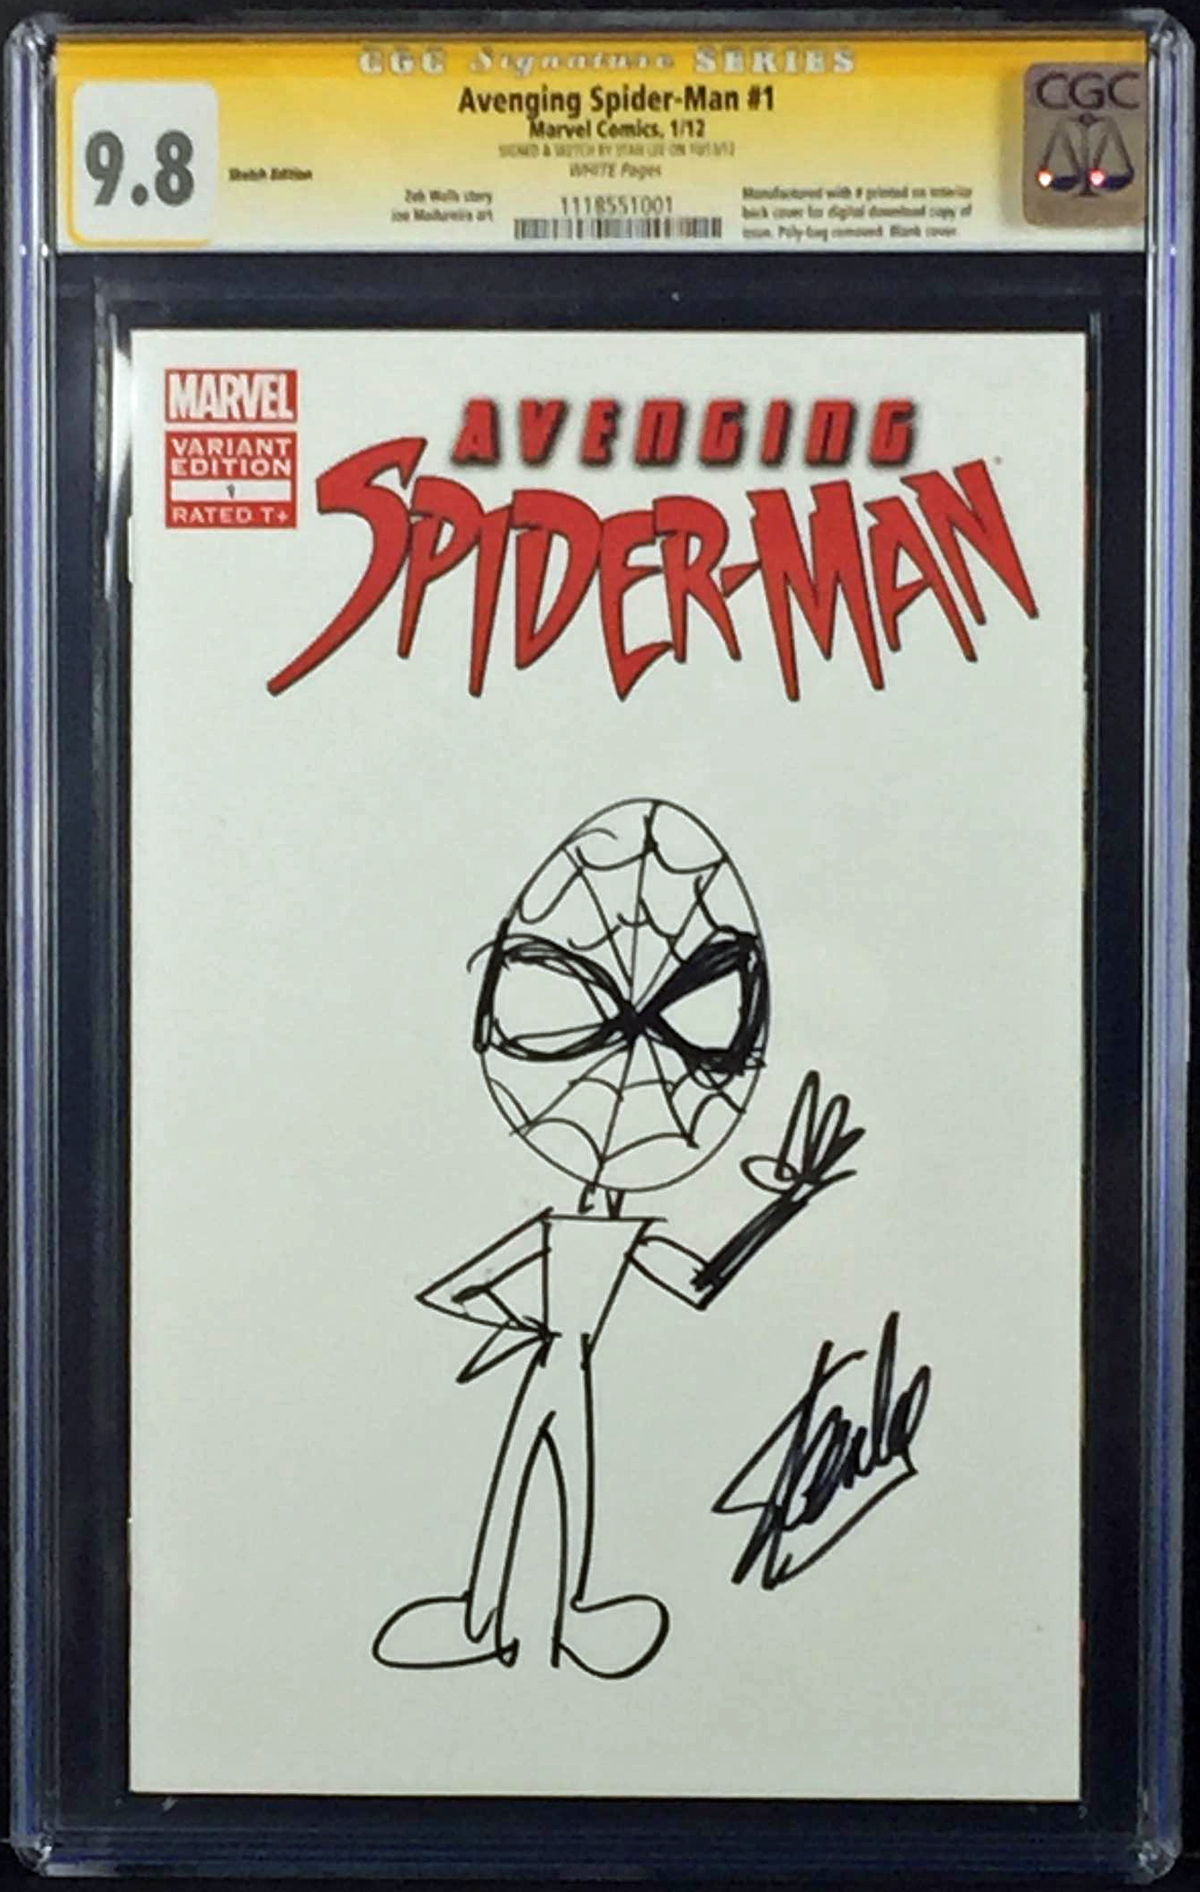 lot detail stan lee signed avenging spiderman 1 comic